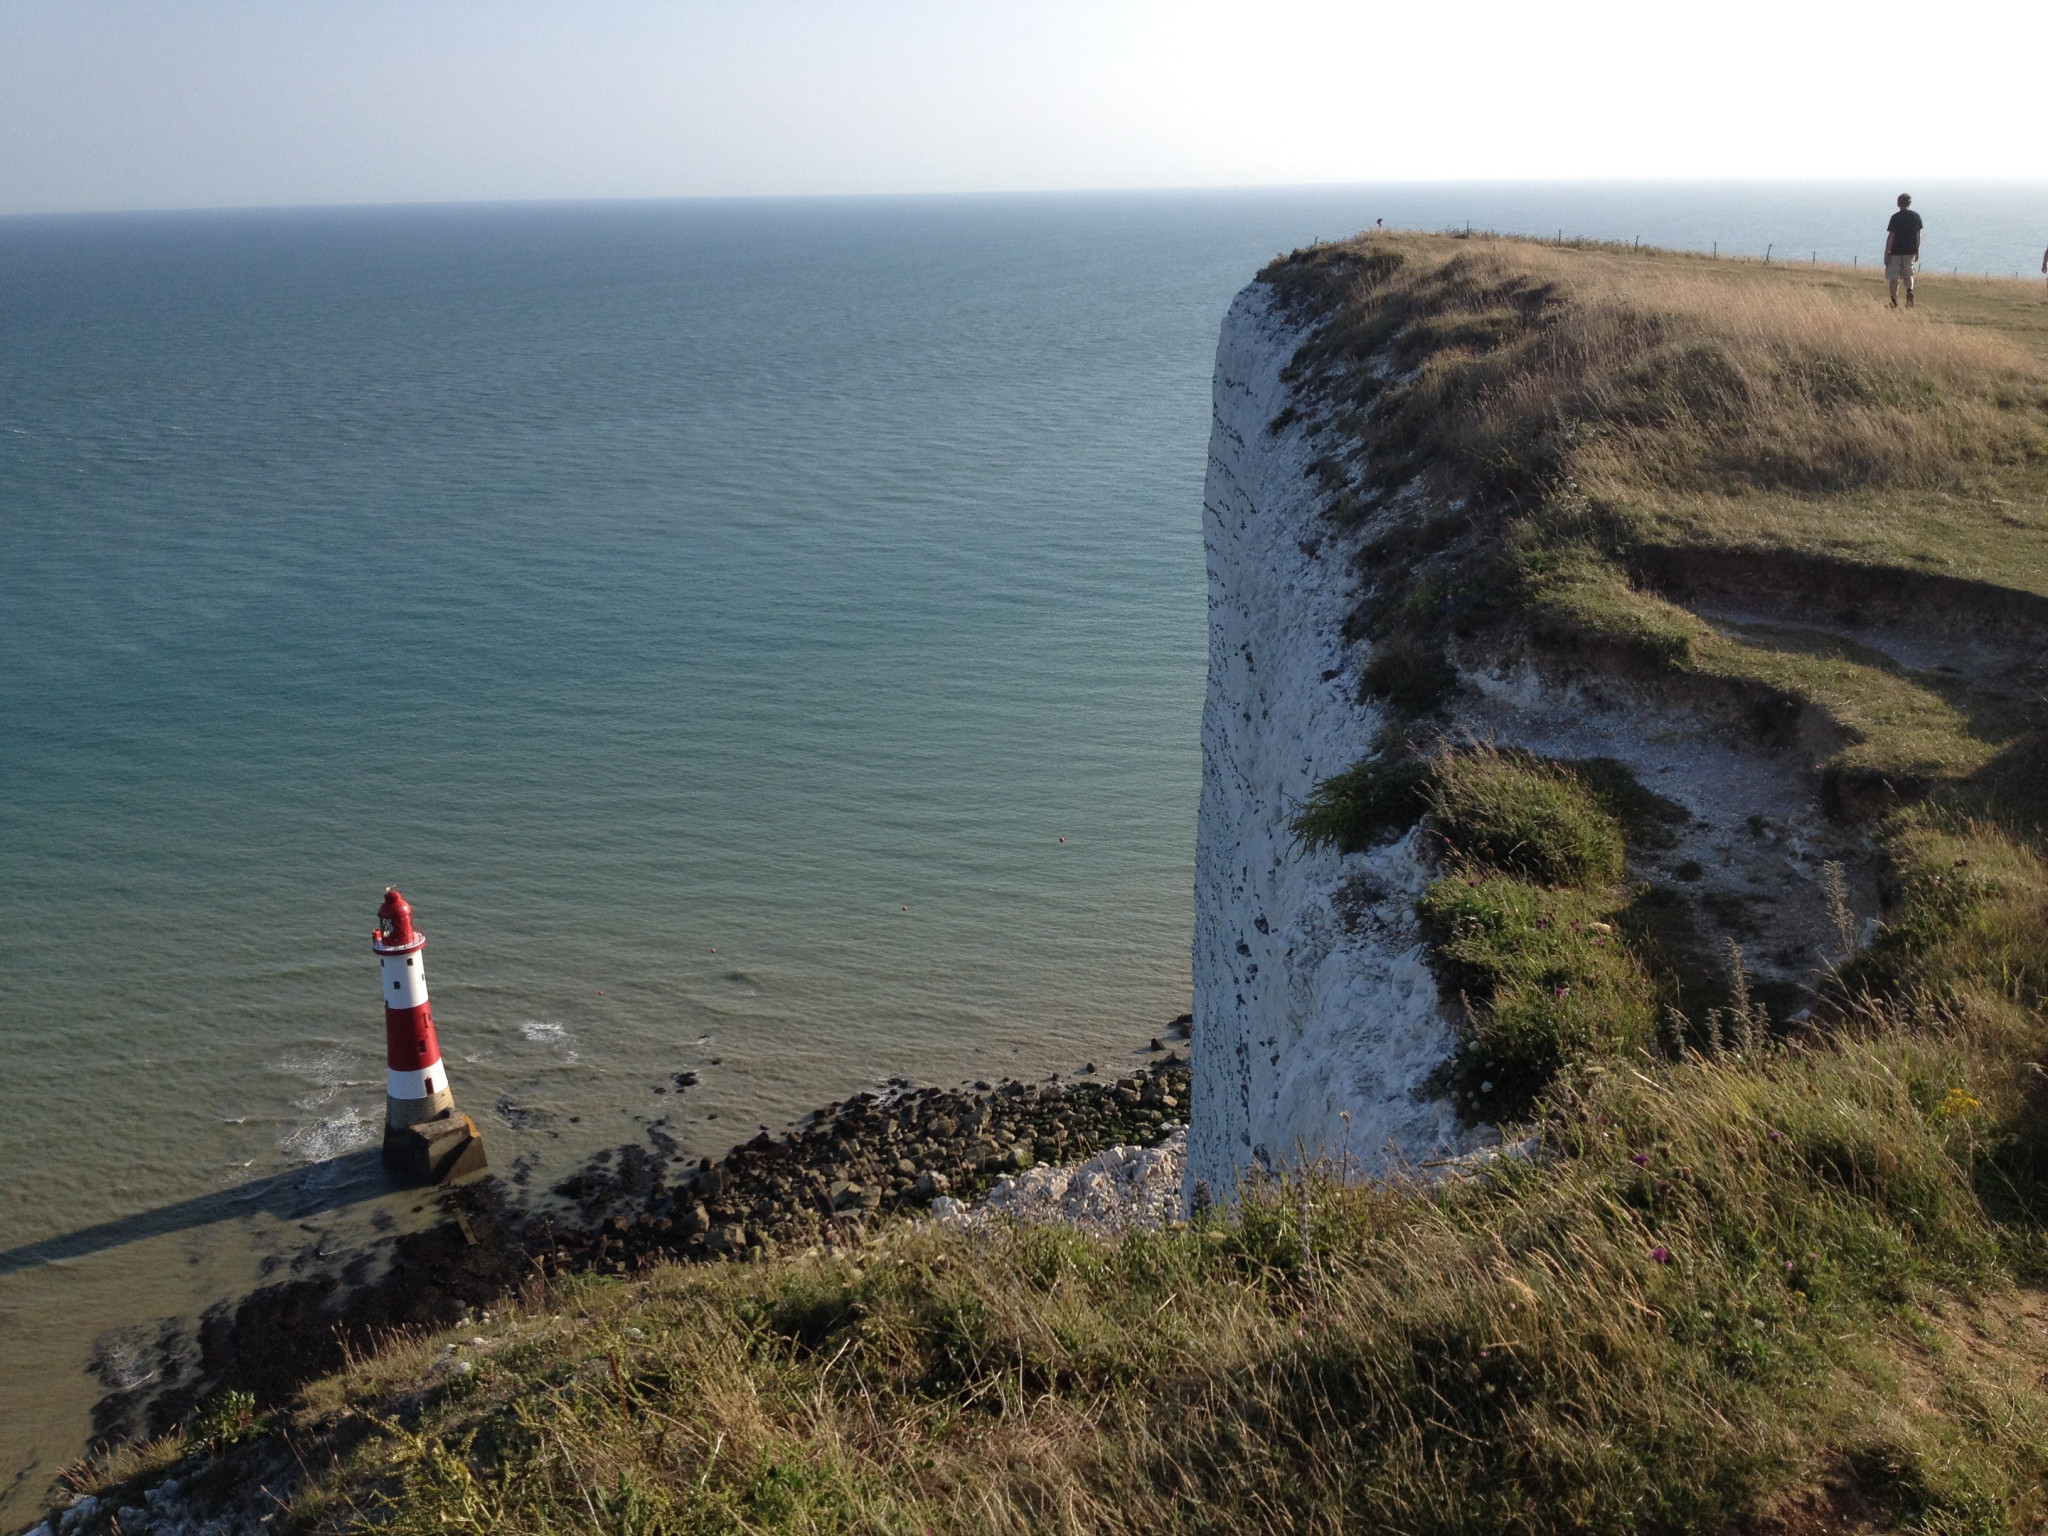 Family walk: Beachy Head, South Downs